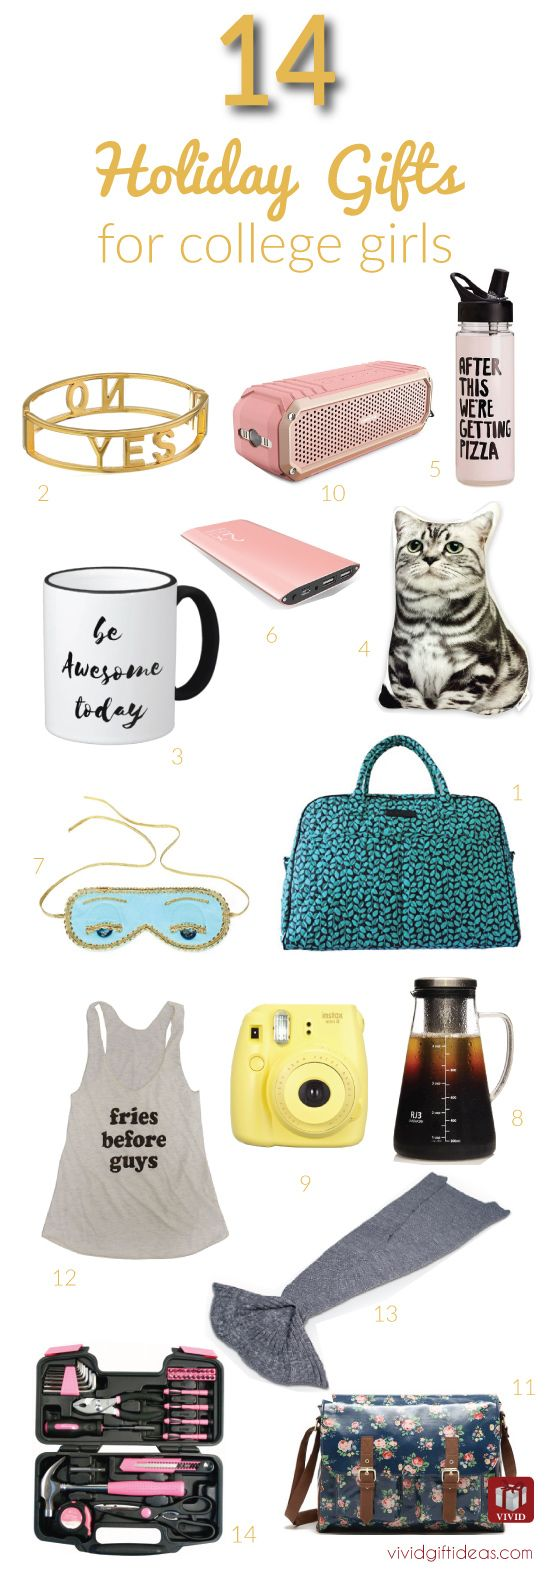 14 Great Christmas Gift Ideas for College Girls College girls